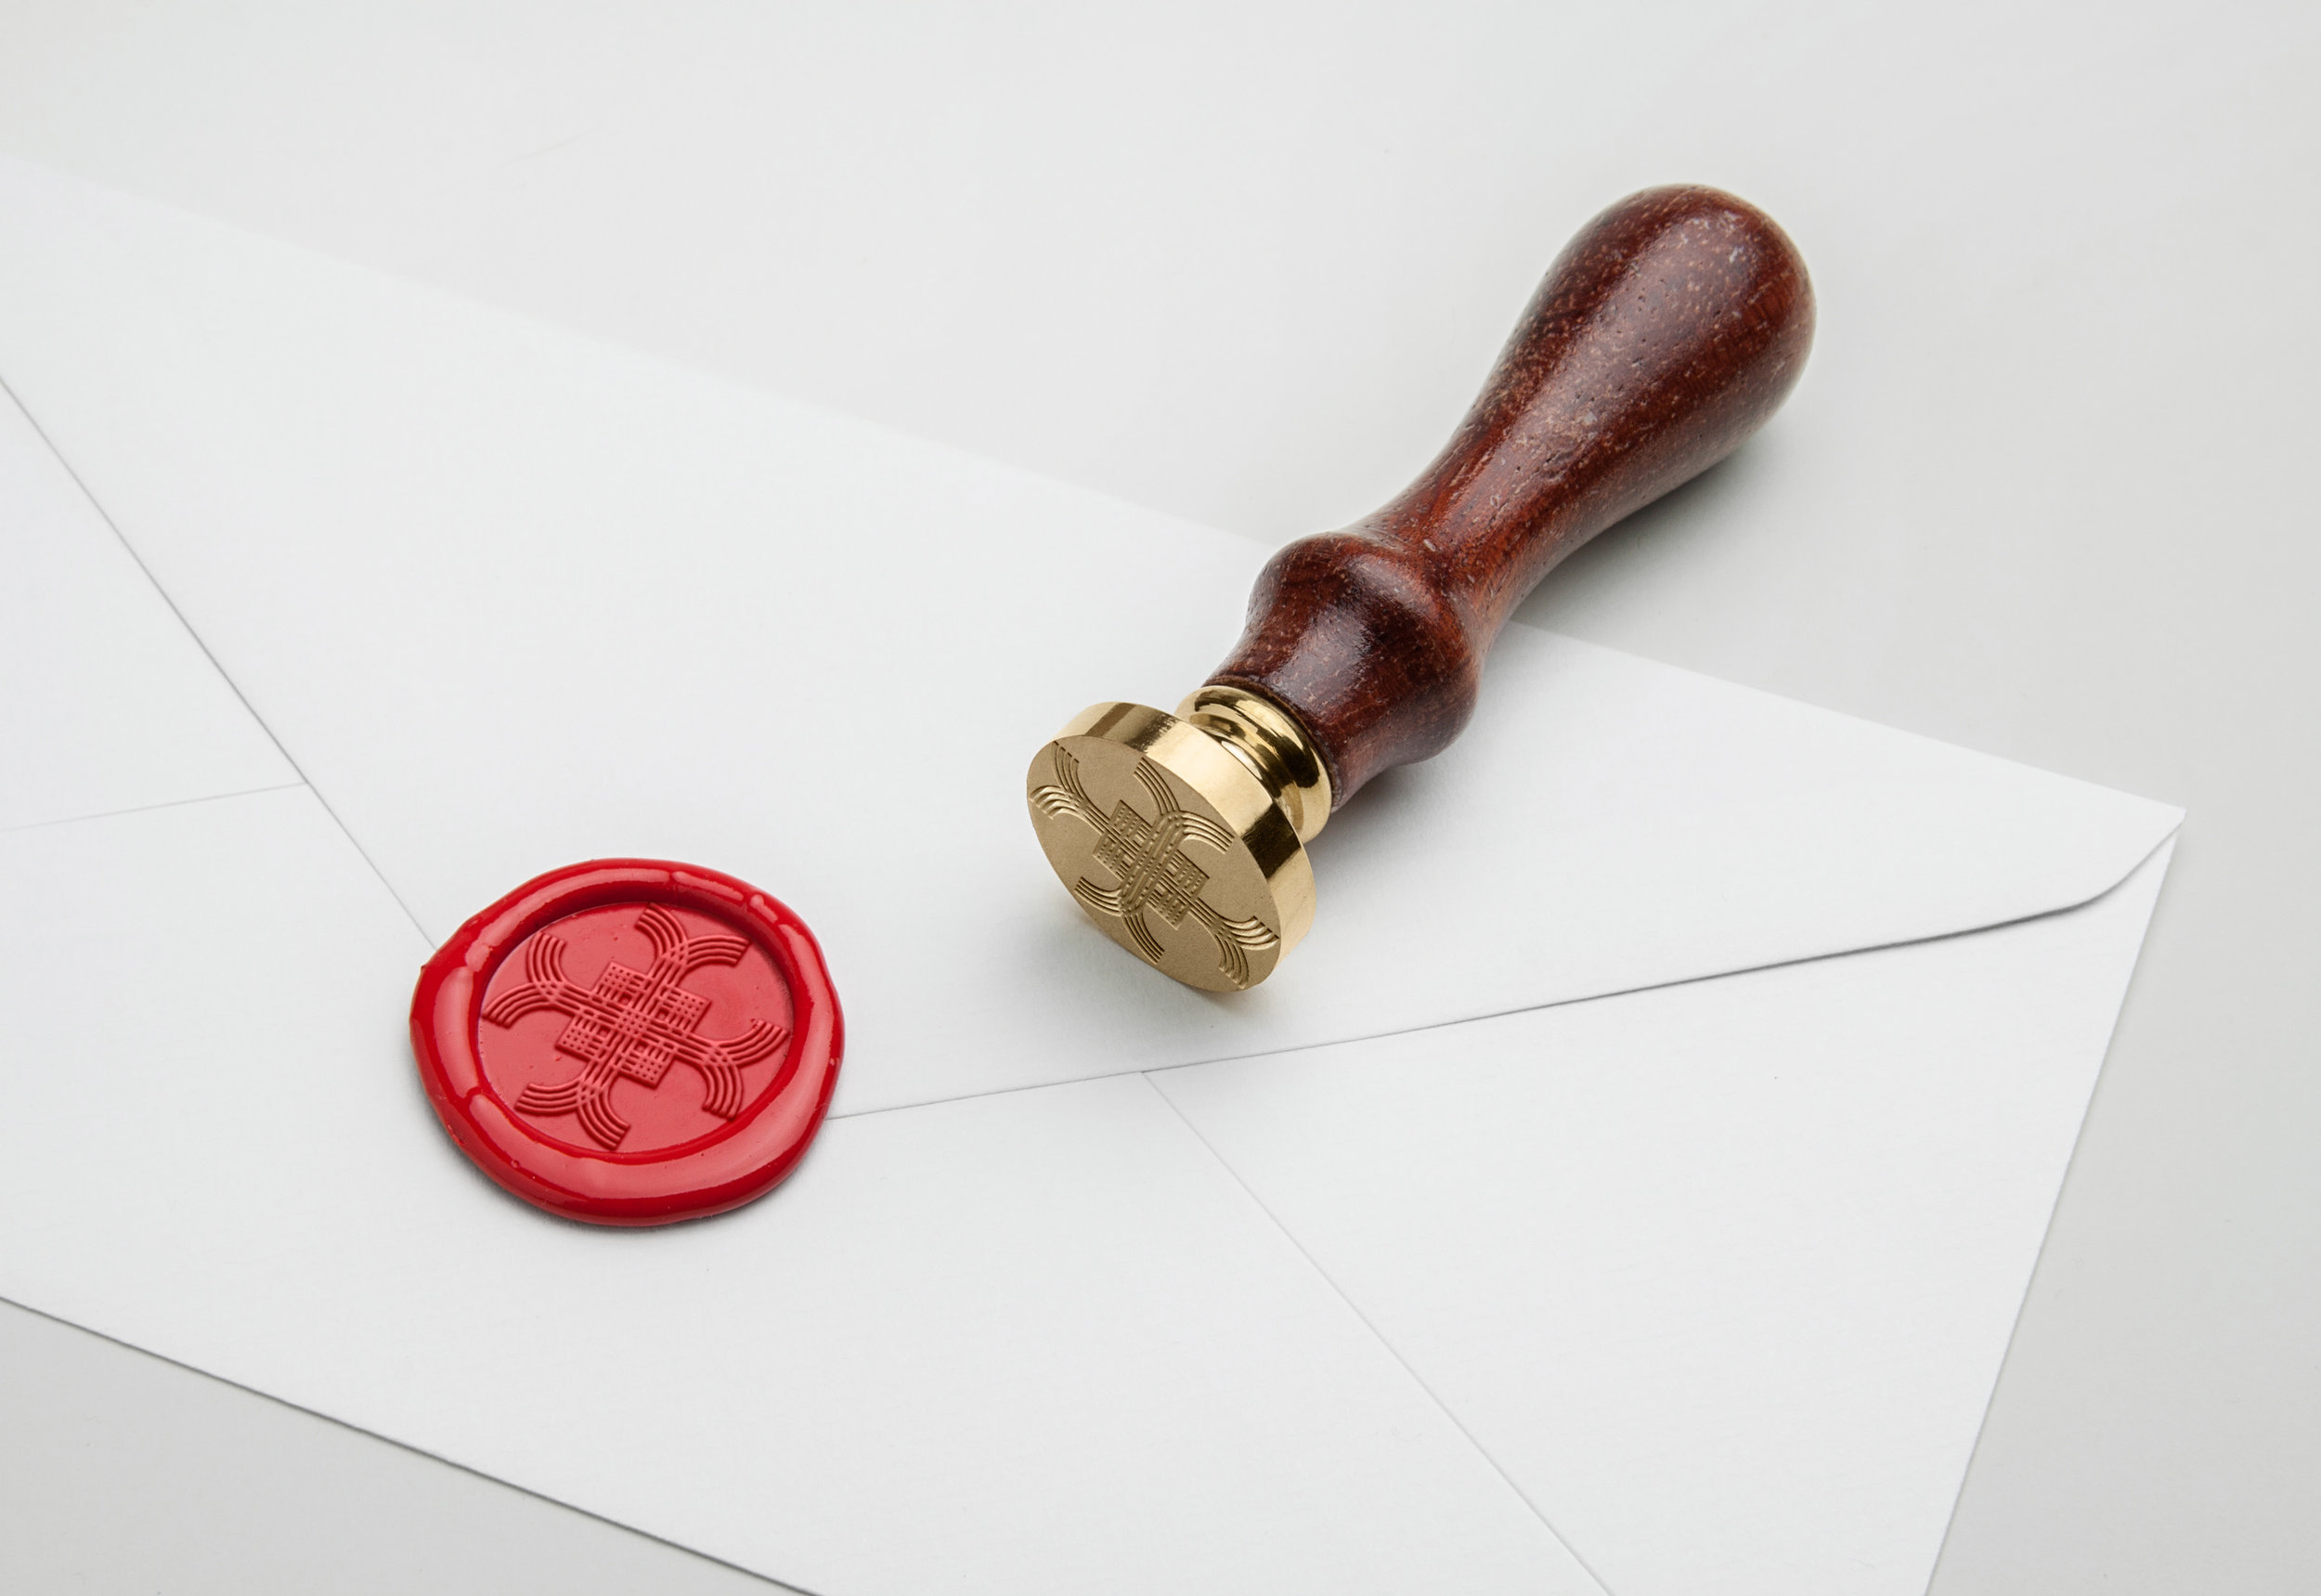 Wax Seal Stamp PSD MowedckUp.jpg